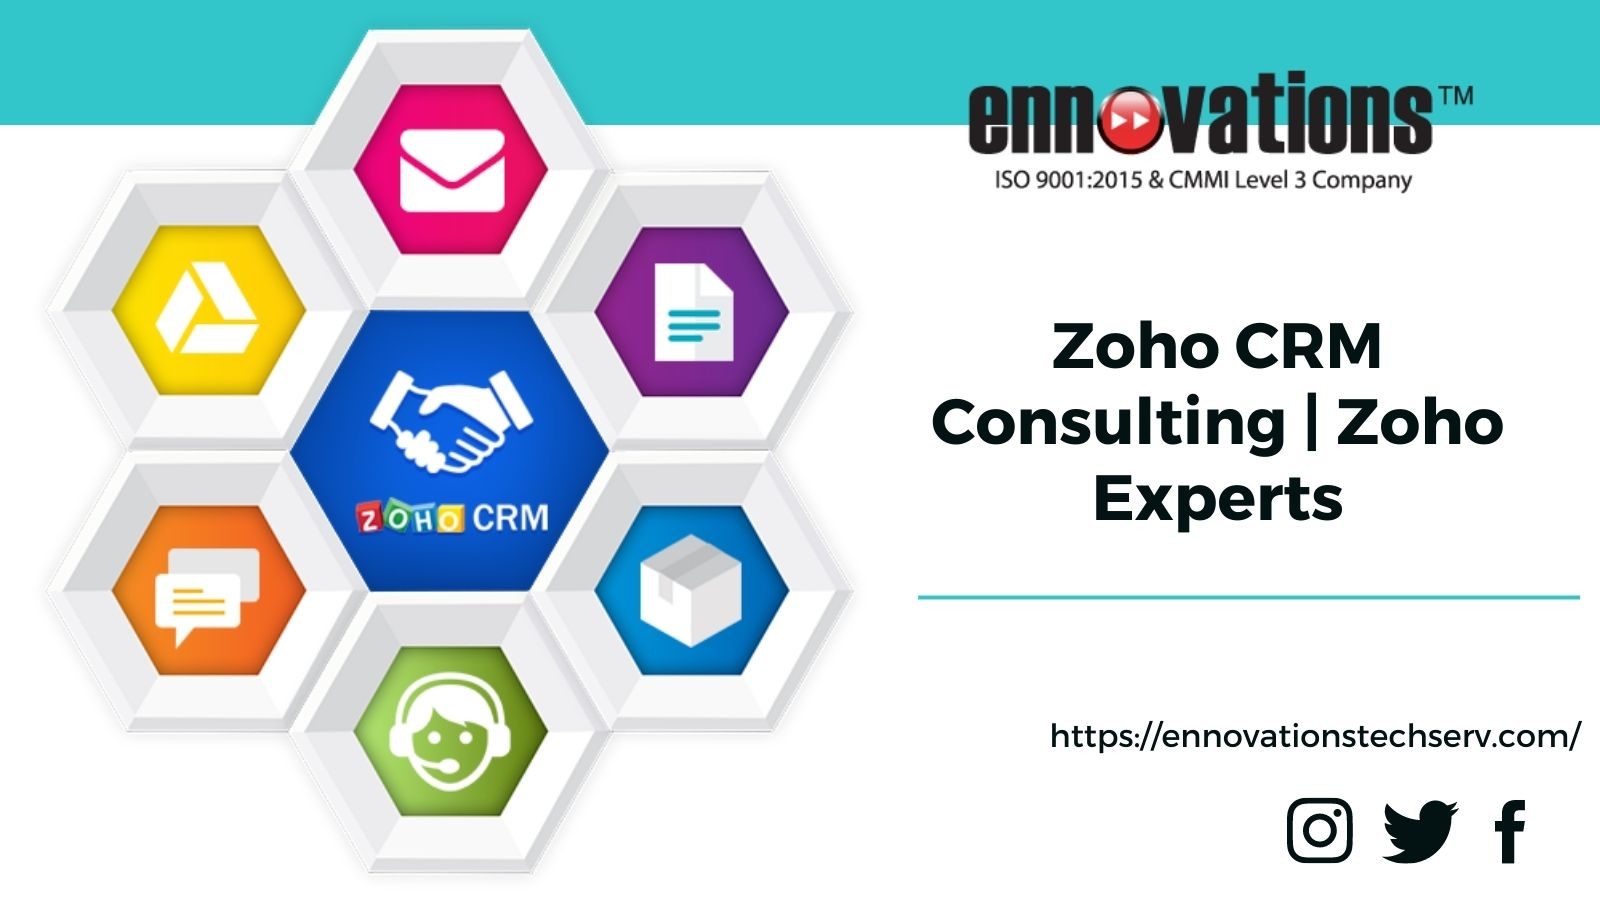 Zoho CRM Consulting Zoho CRM Experts